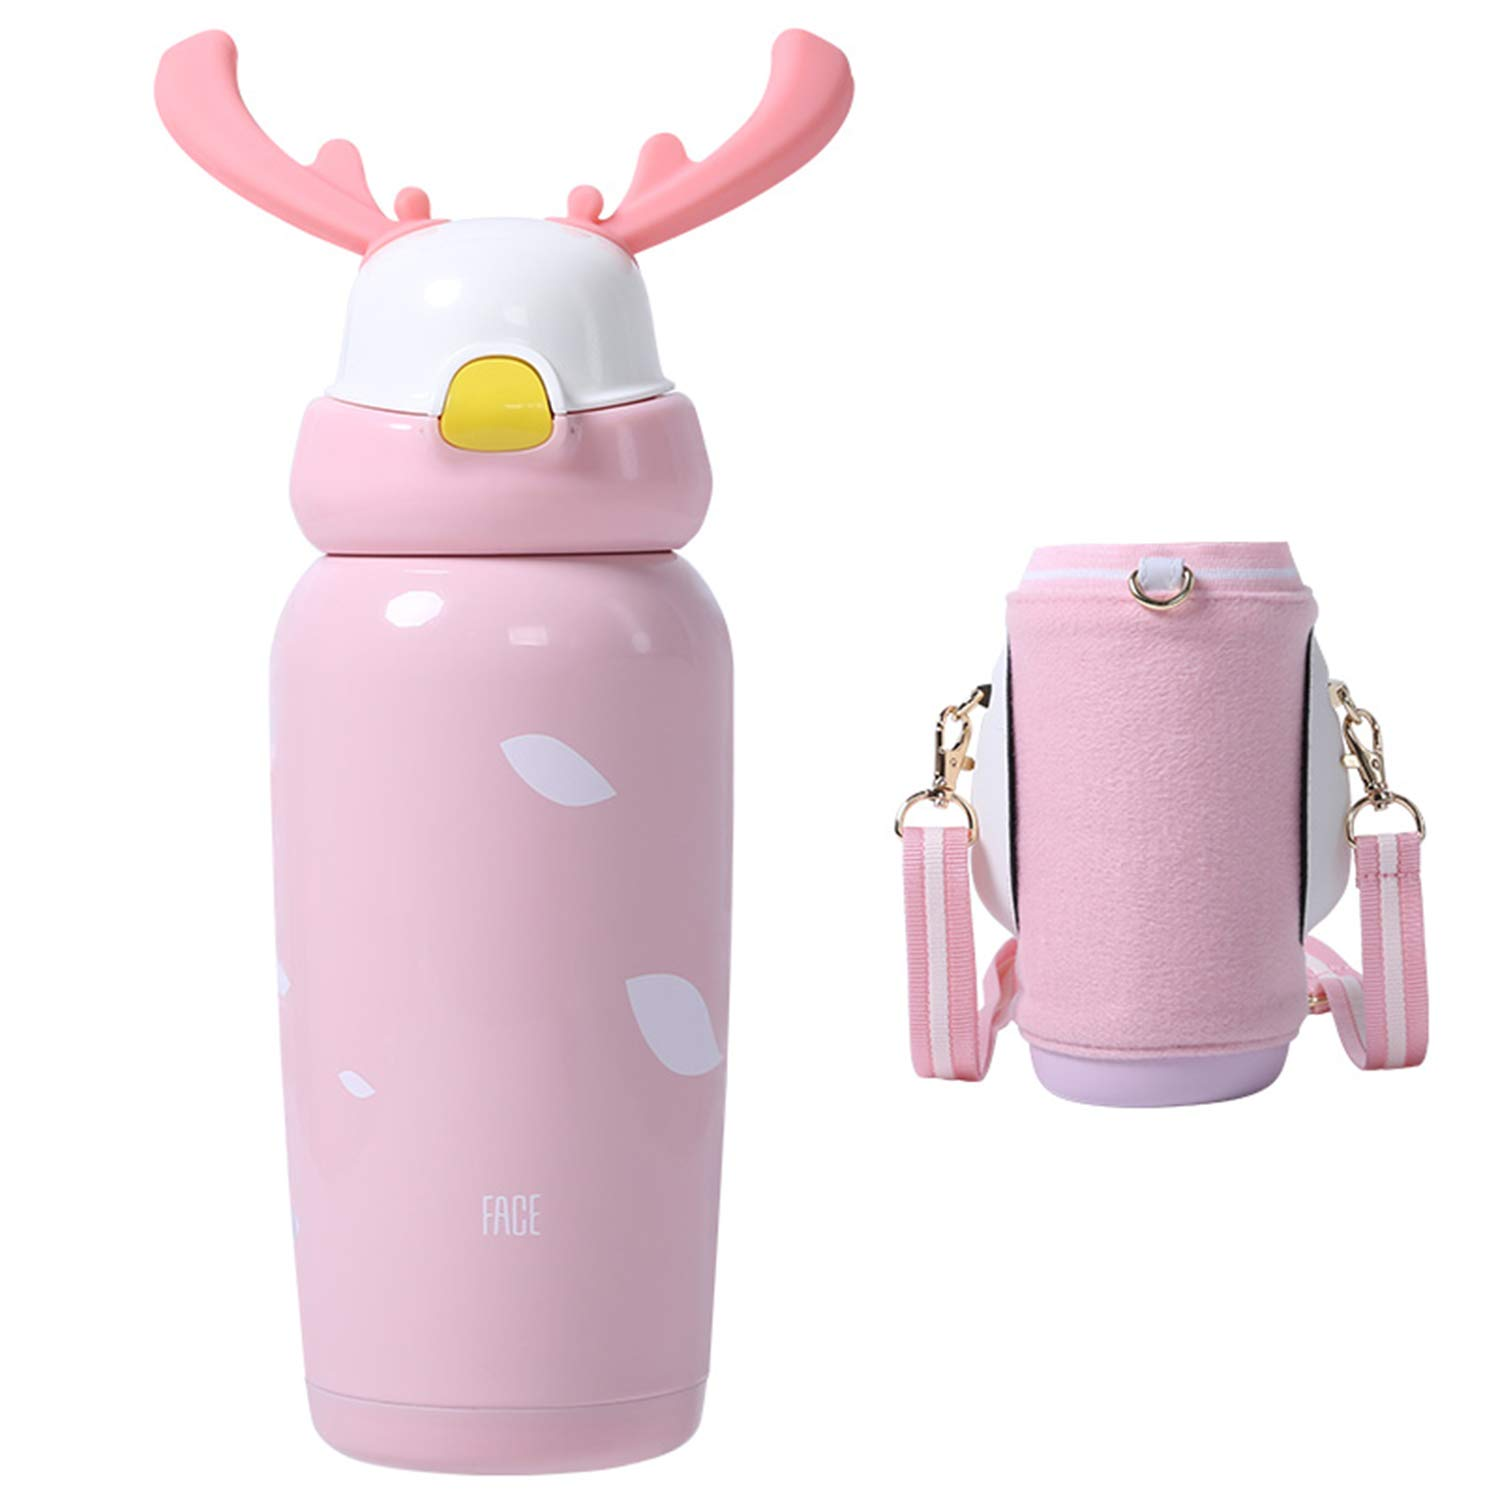 FACE Thermos Water Bottle for Kids & Adult,Vacuum Insulated Bottle,Stainless Steel Travel Mug with Straw,Antlers Thermos Cup Present for Christmas (Pink)